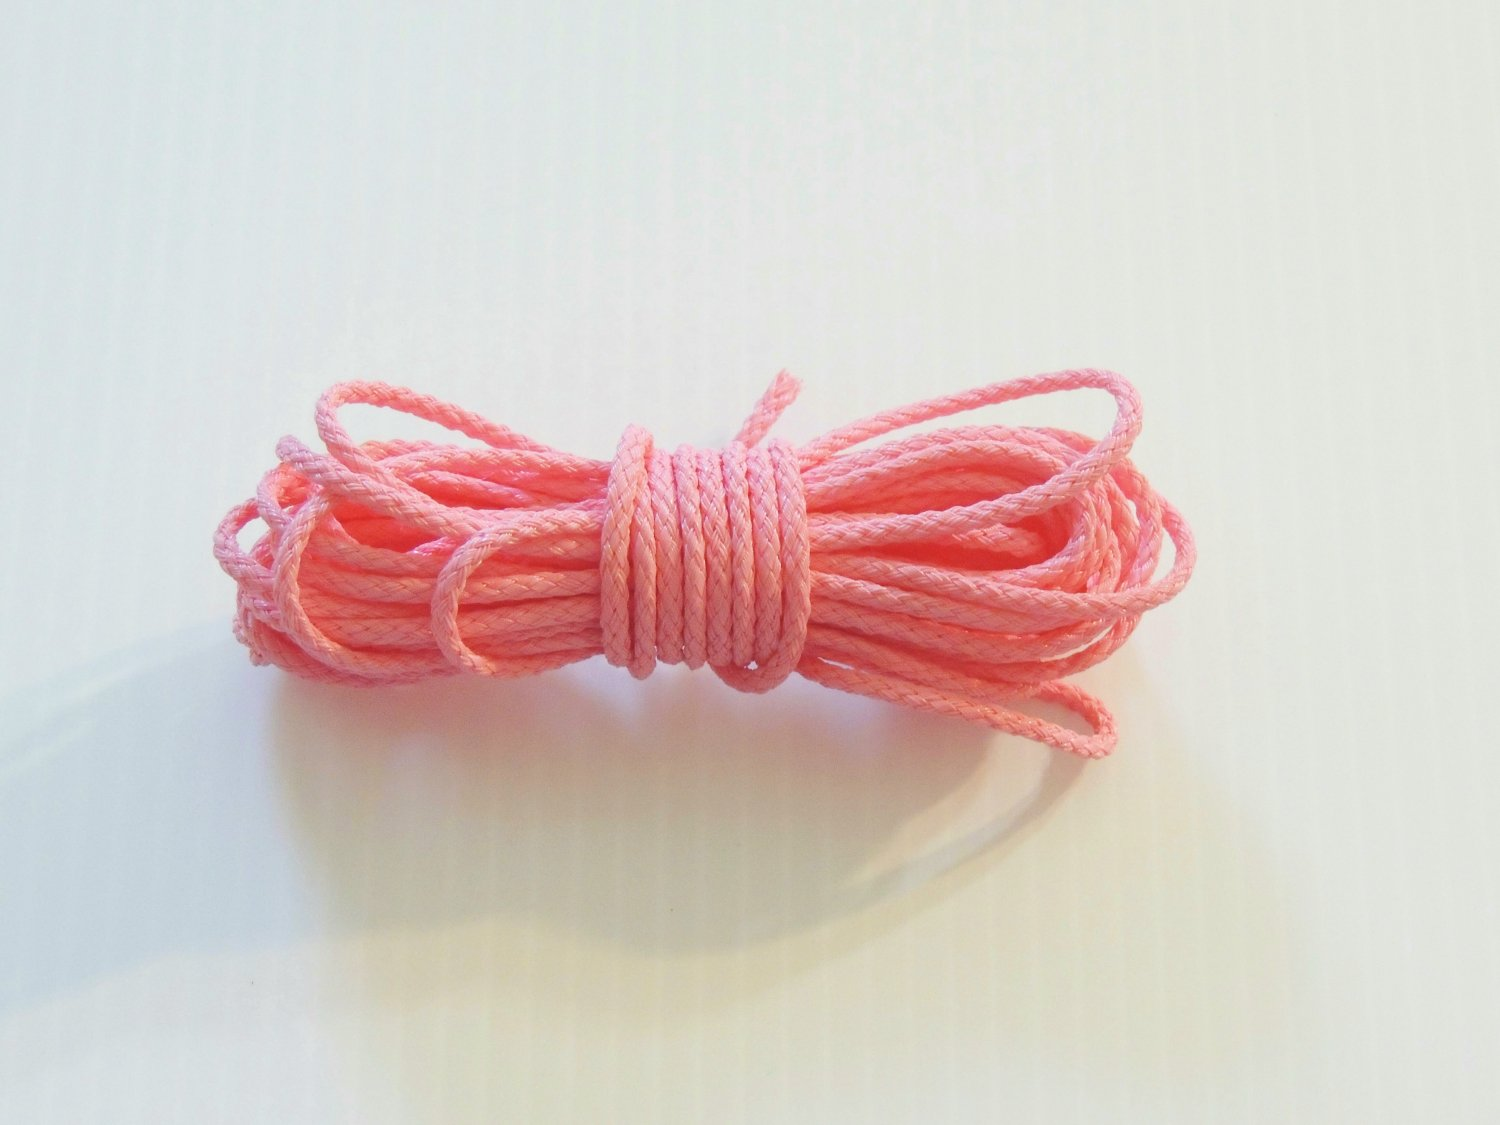 20' PINK POLY/PAULIE ROPE bird toy parts for parrots cages crafts